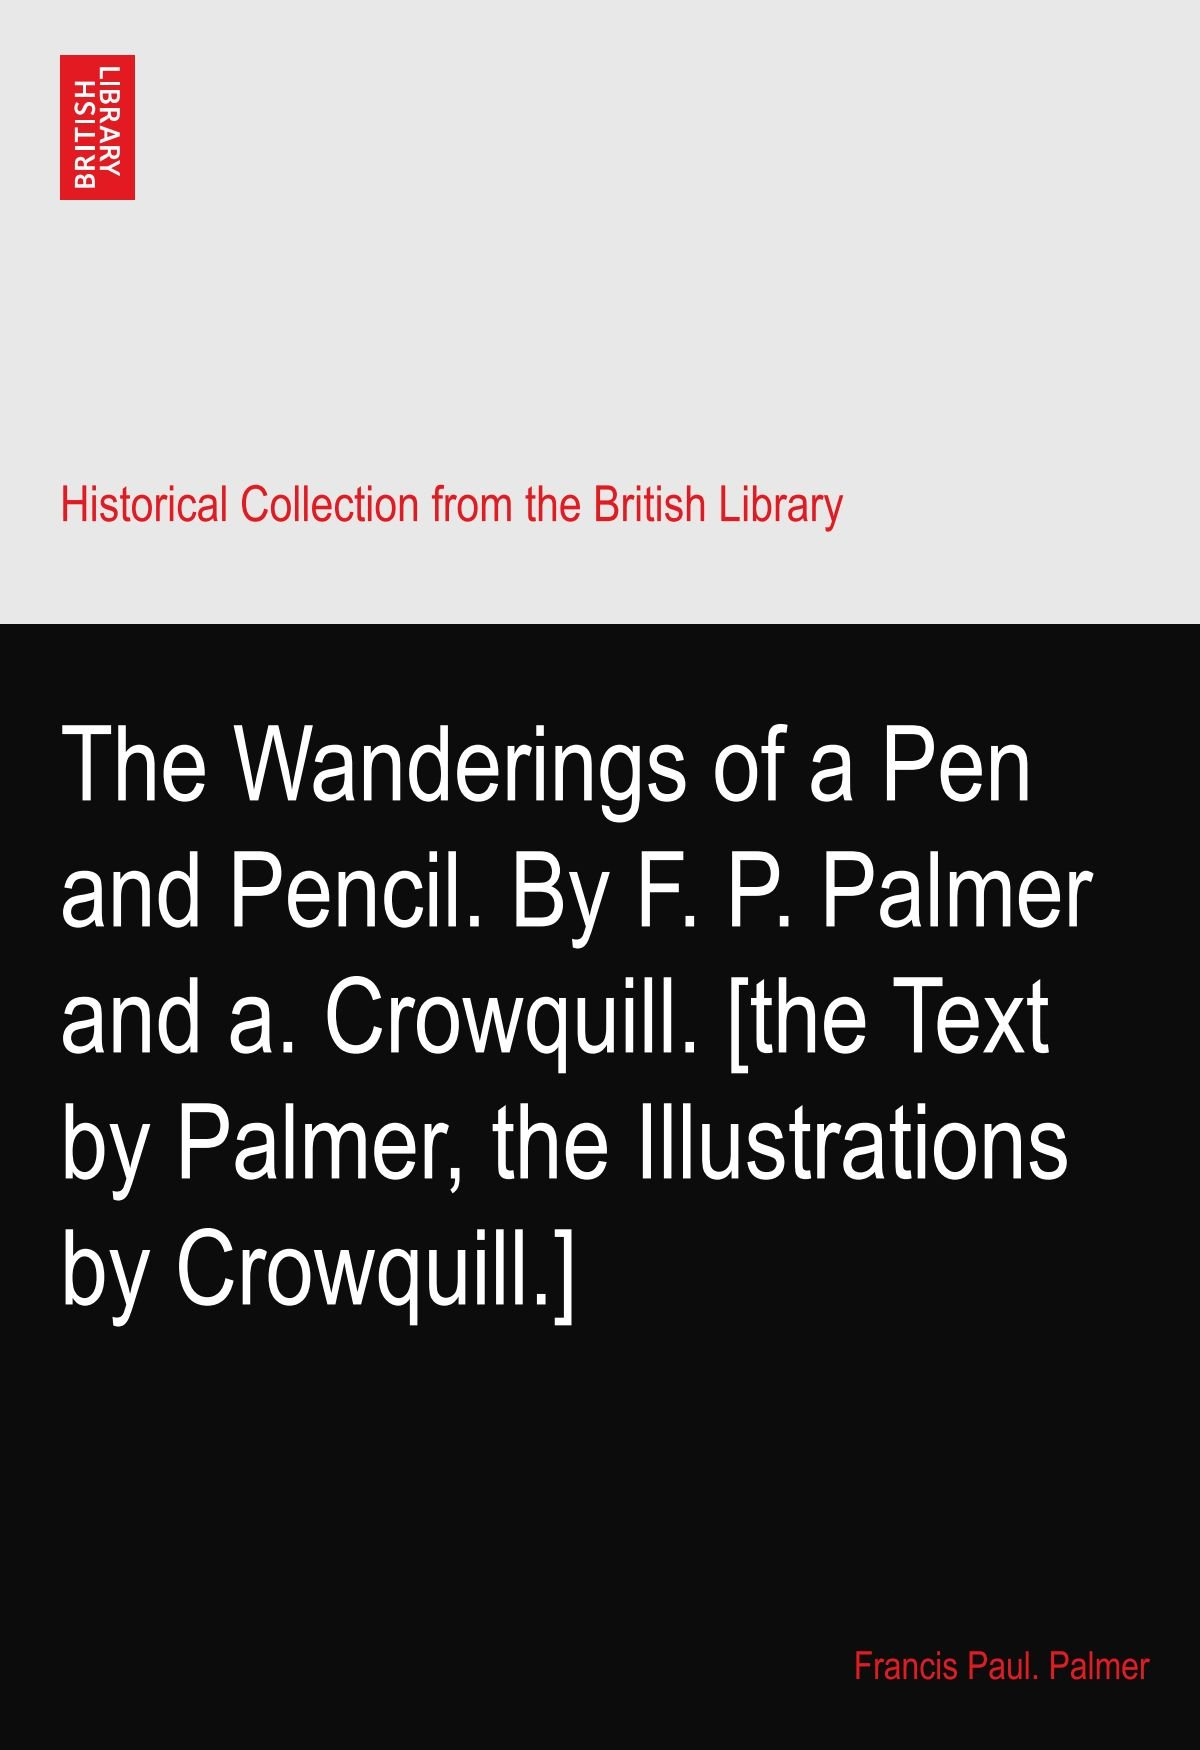 Download The Wanderings of a Pen and Pencil. By F. P. Palmer and a. Crowquill. [the Text by Palmer, the Illustrations by Crowquill.] pdf epub